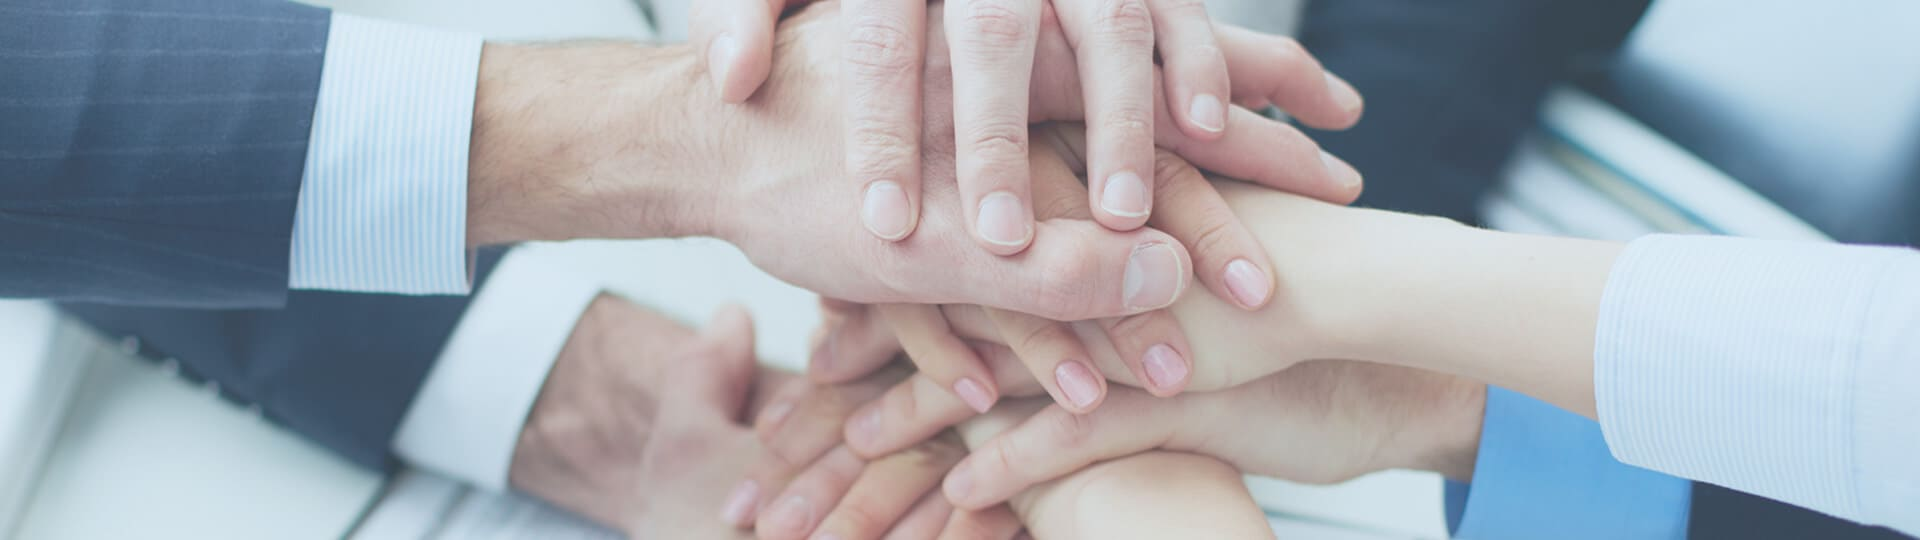 hands joining together, team collaboration